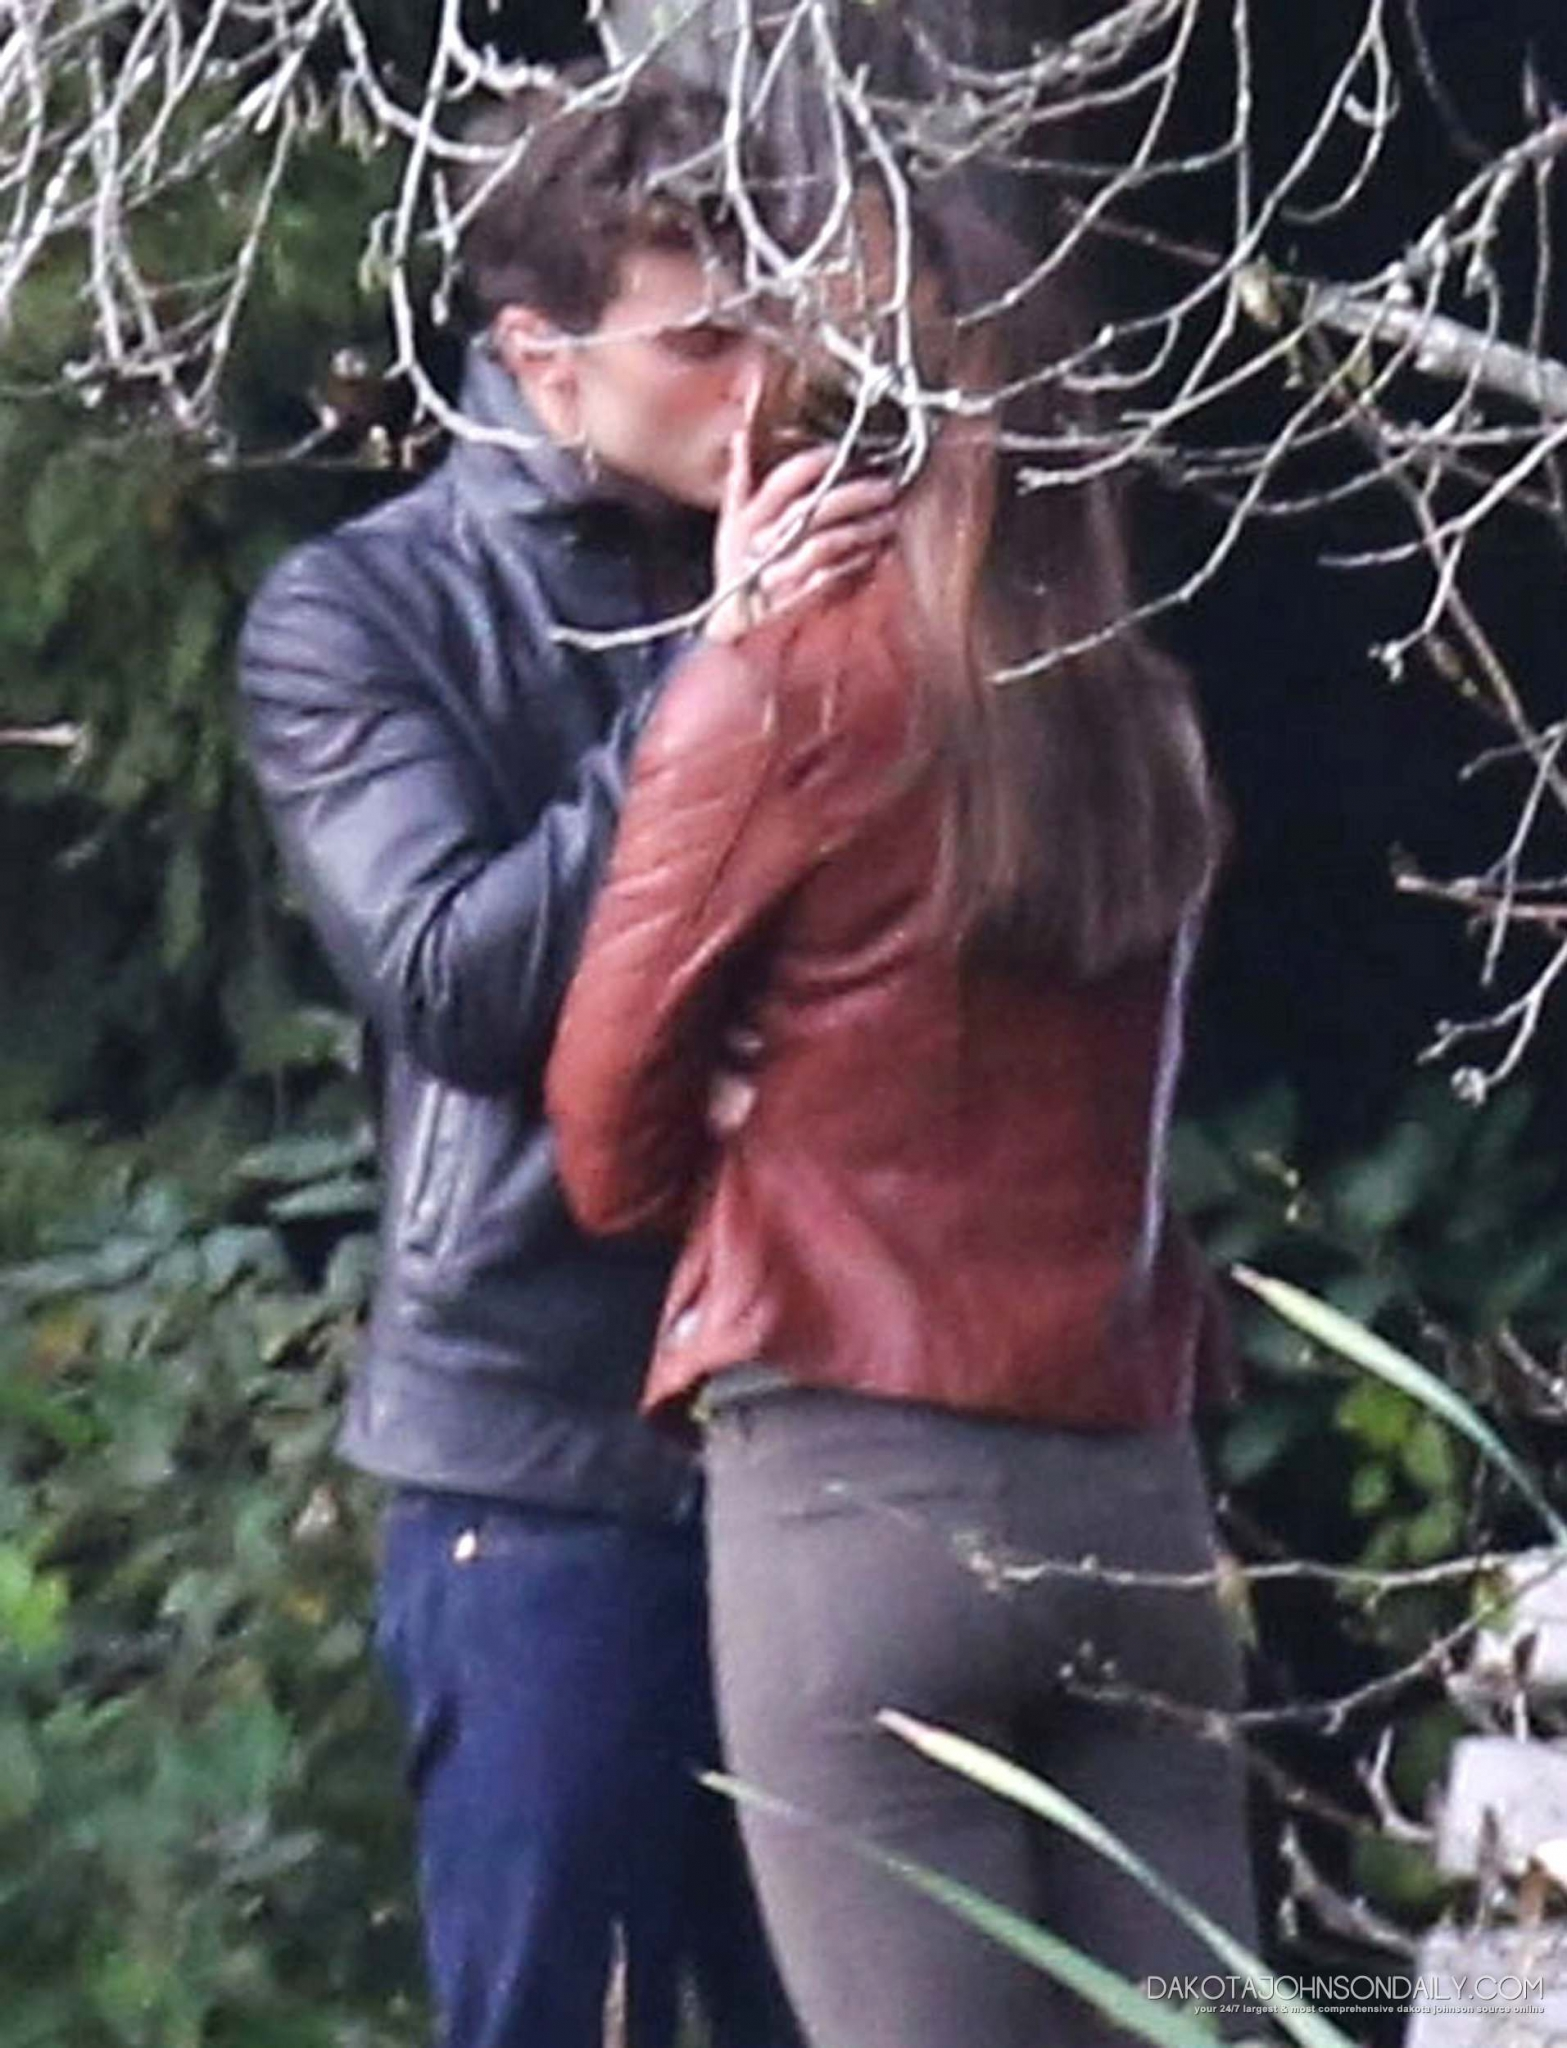 Dakota Johnson and Jamie Dornan Shared Kiss On The Set of Fifty Shades of Grey